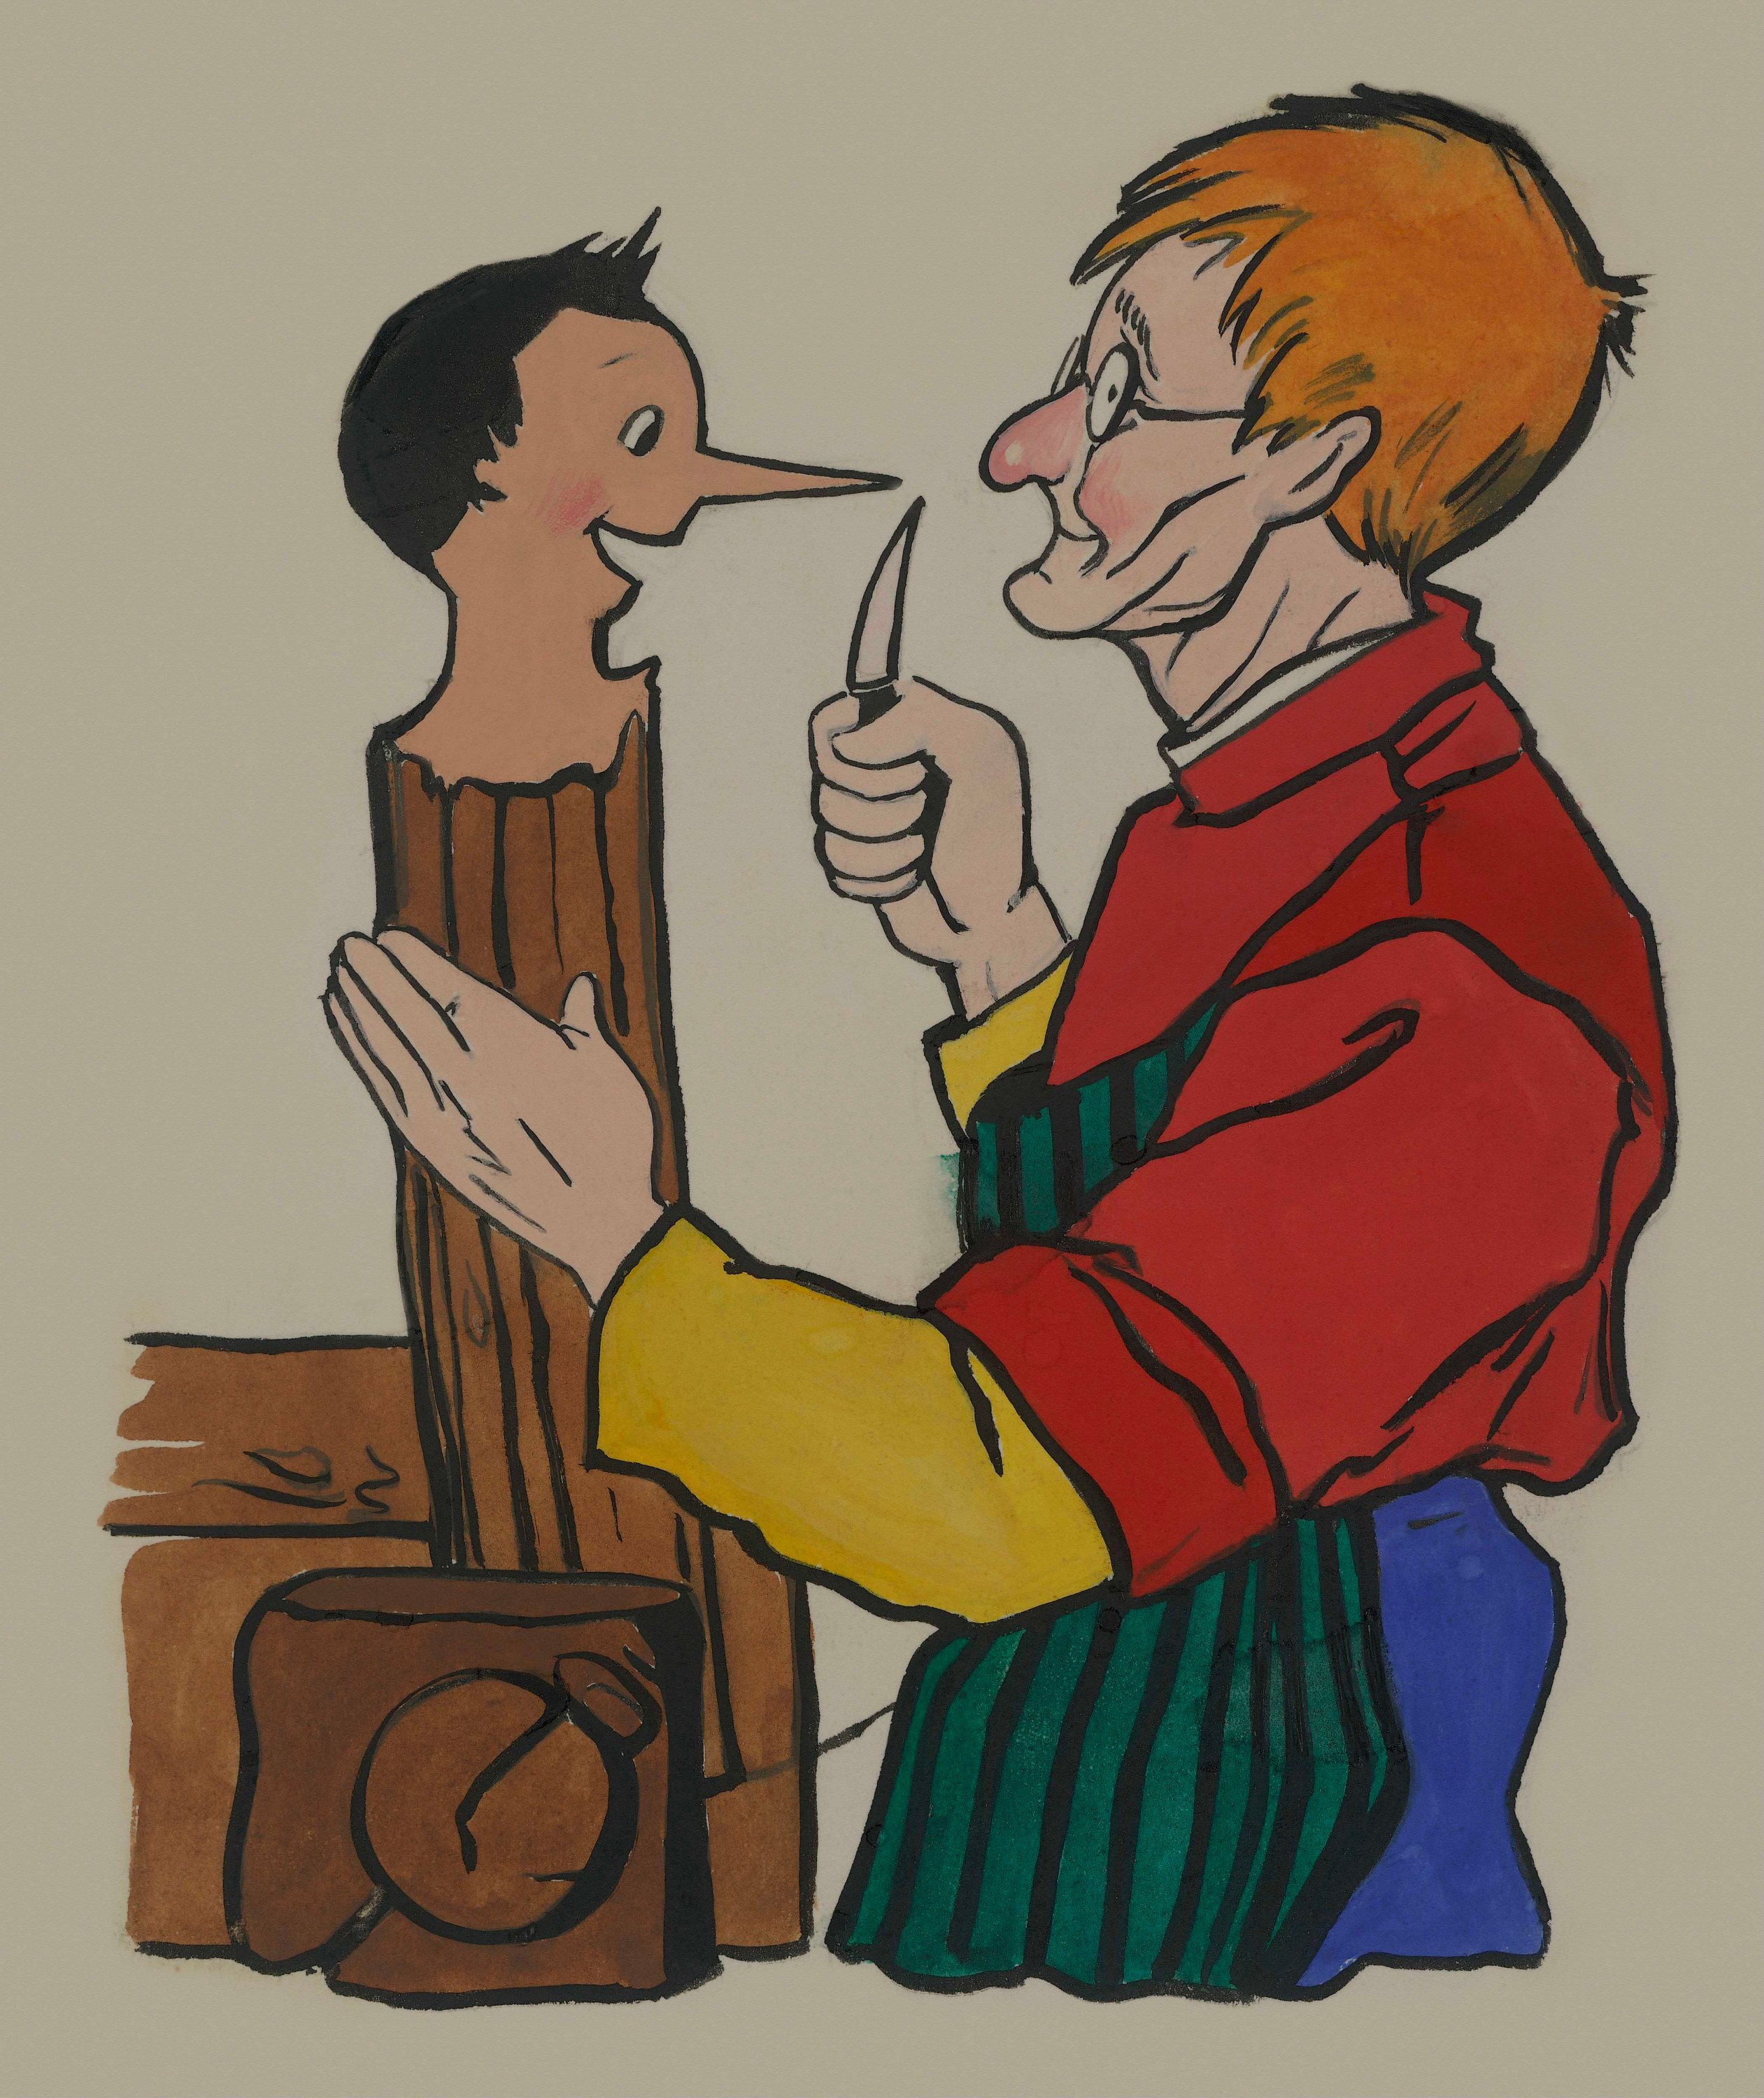 Geppetto carves Pinocchio from a block of wood in an illustration for the children's novel